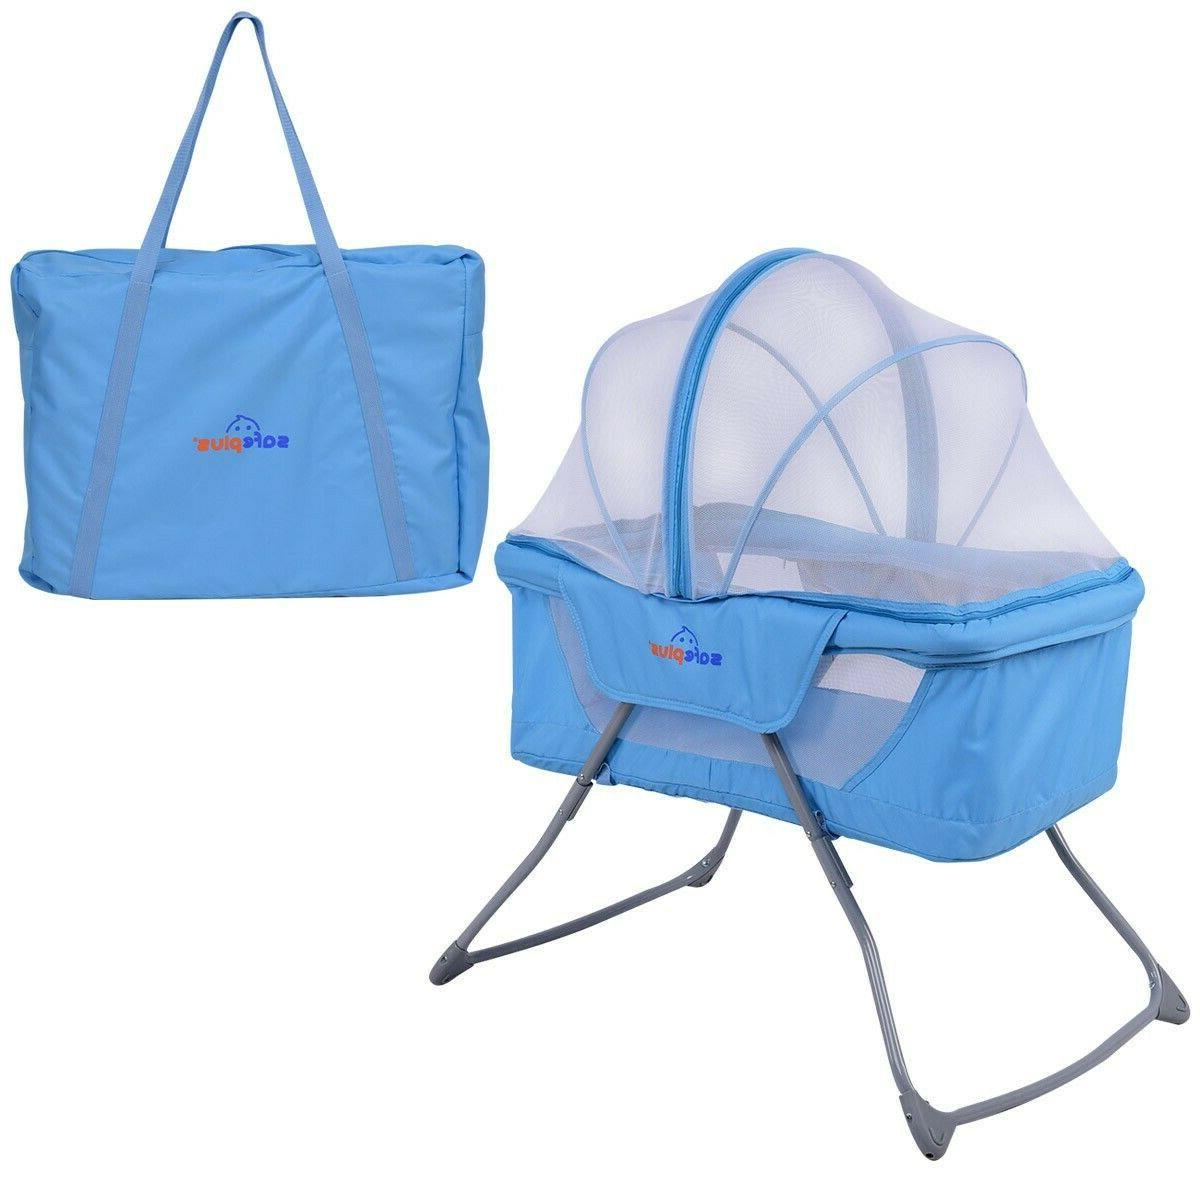 Foldable Lightweight Rocking Bed with Net